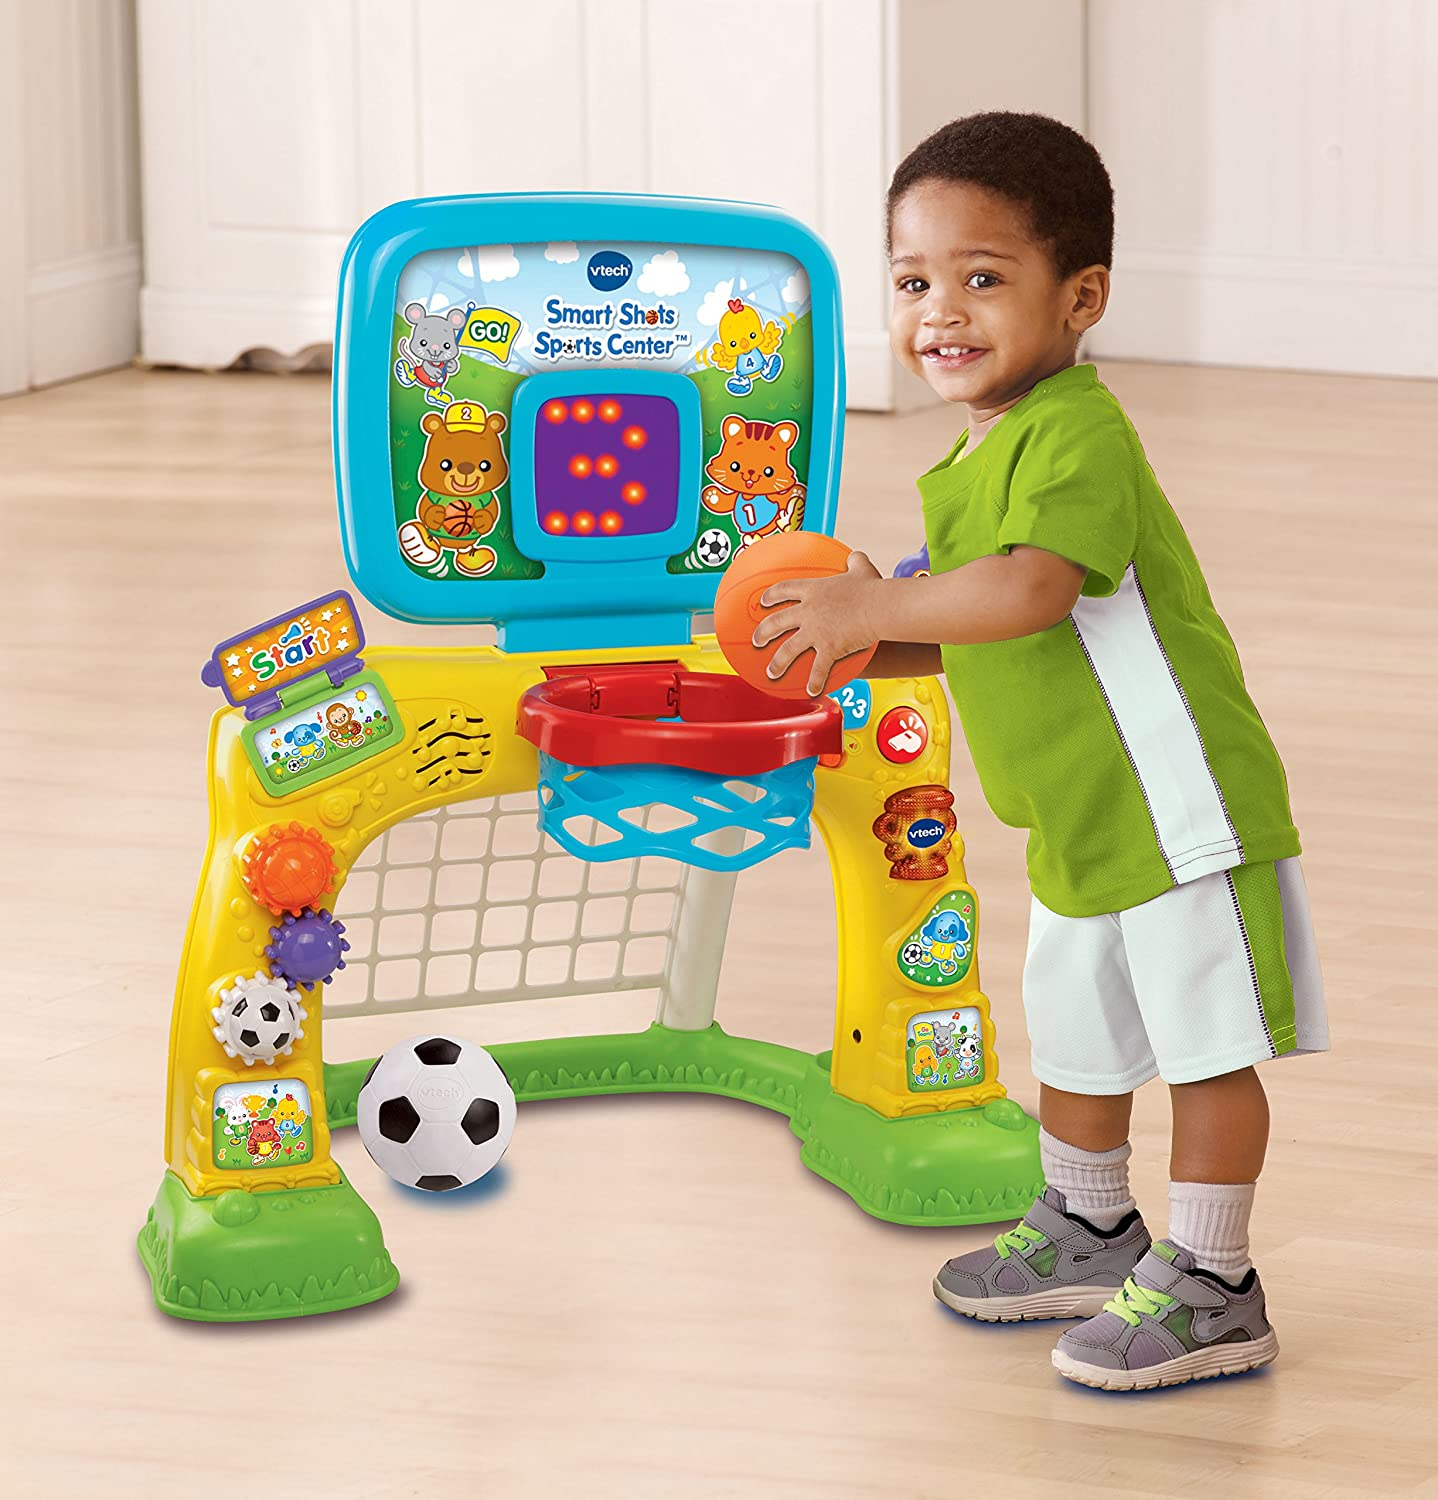 Top Toys For 2 Year Old Boys for 2016 Gift Canyon